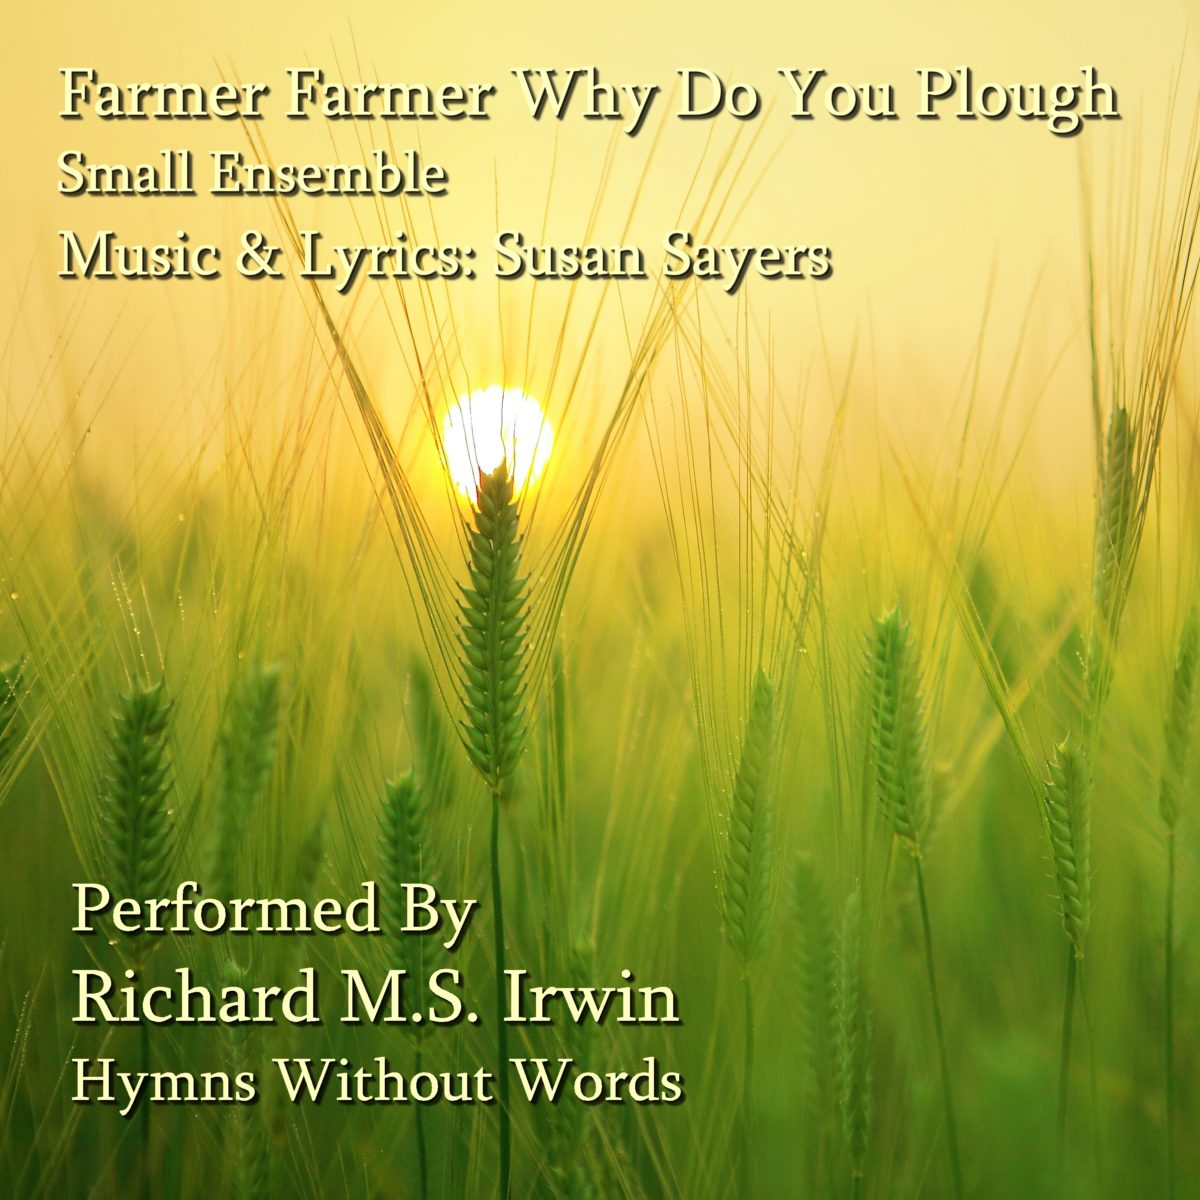 Farmer, Farmer Why Do You Plough (4 Verses) – Small Band